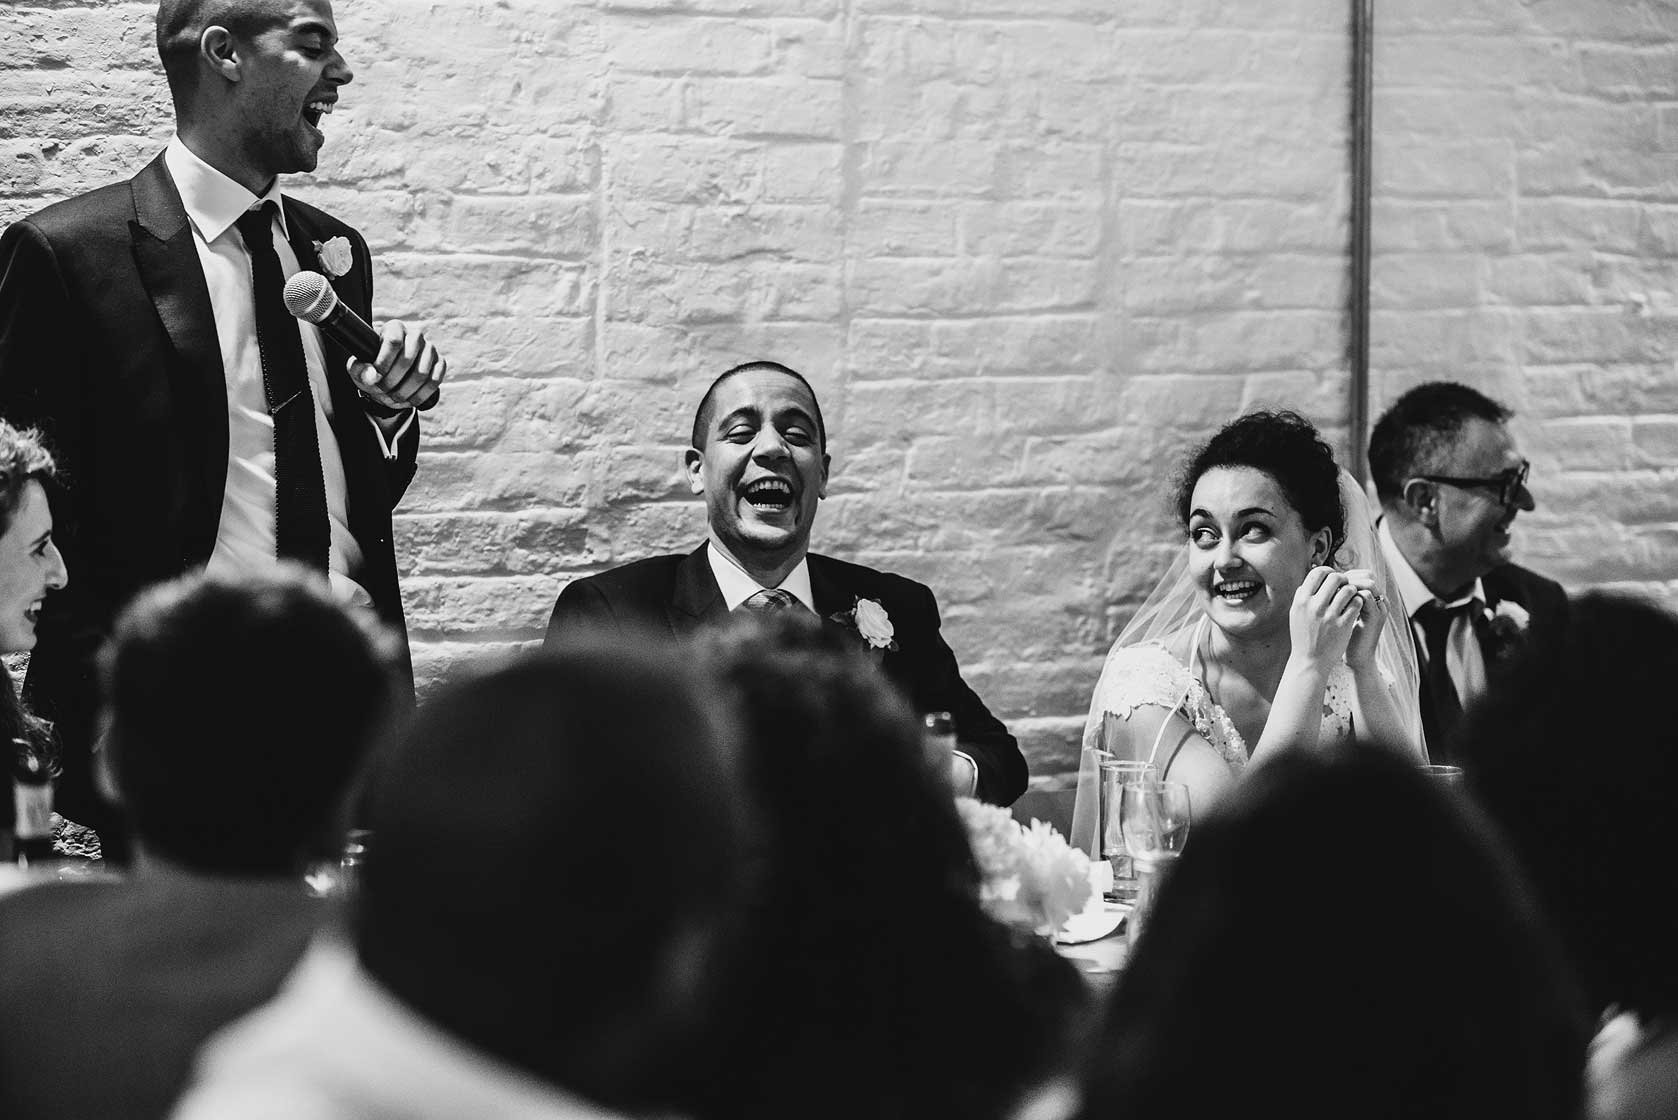 Reportage Wedding Photography at Brixton East